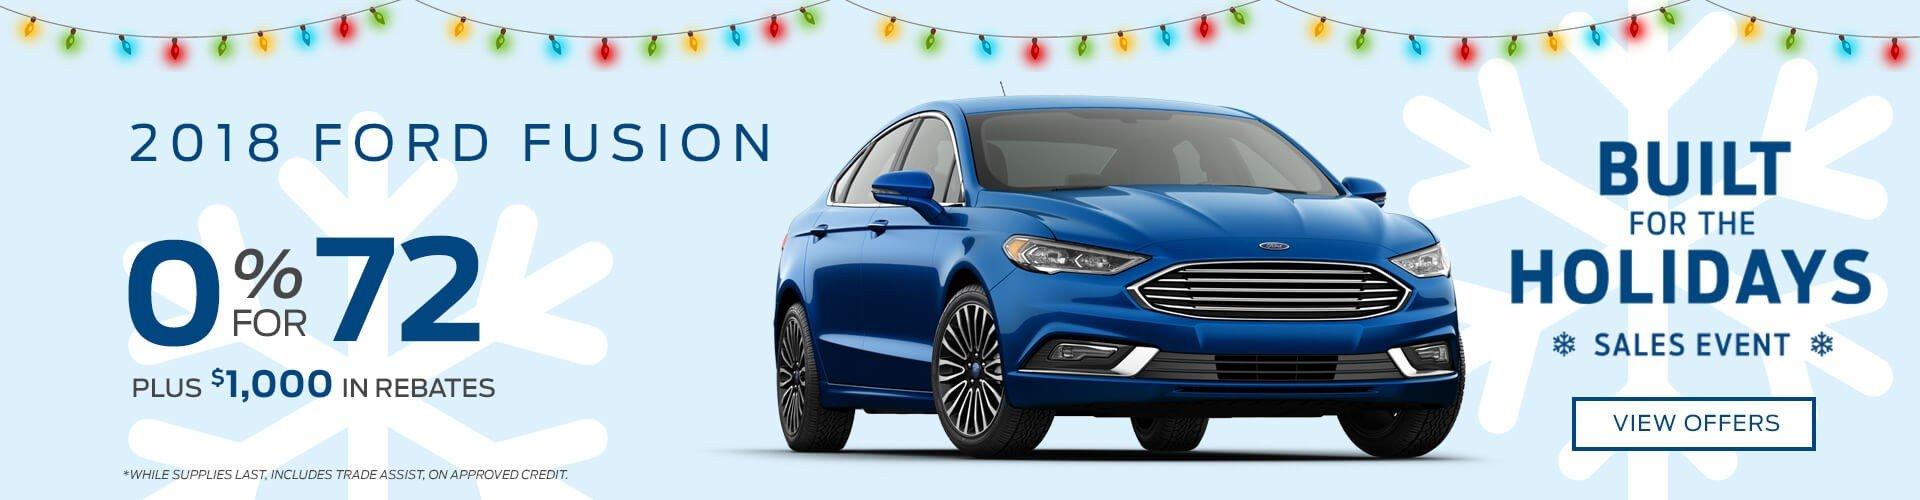 Special offer on 2018 Ford Fusion 2018 Ford Fusion